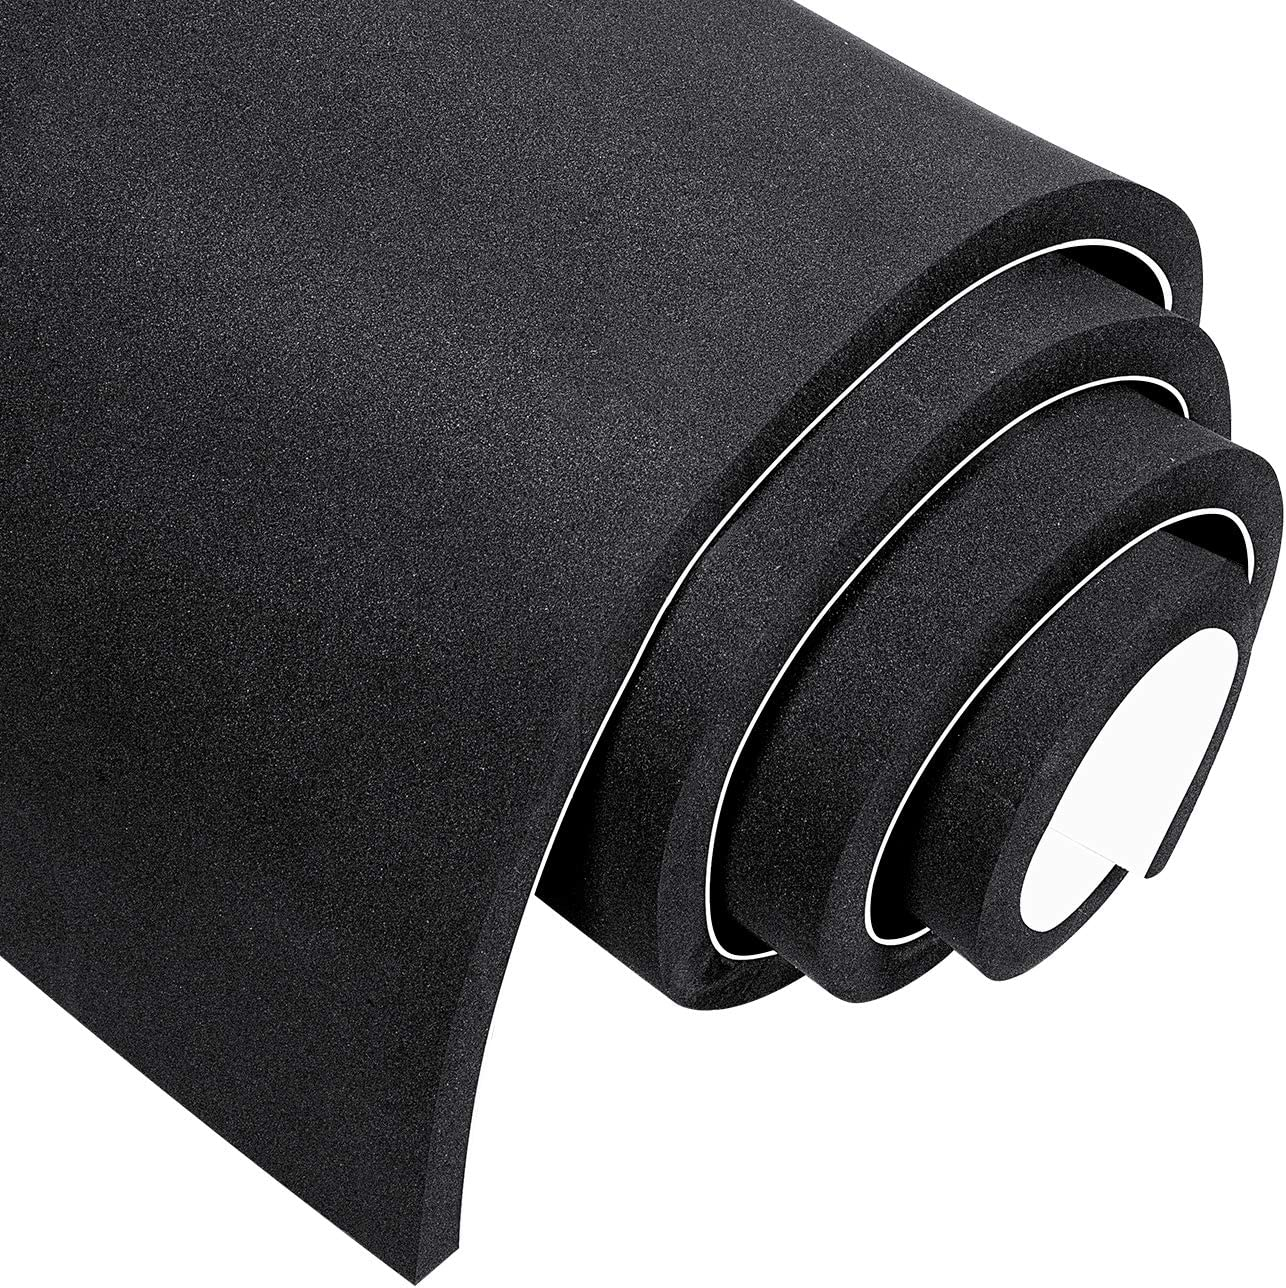 MAGZO Foam Insulation Neoprene 1 High quality 2 Inc x Excellent 12 Inch Thickness